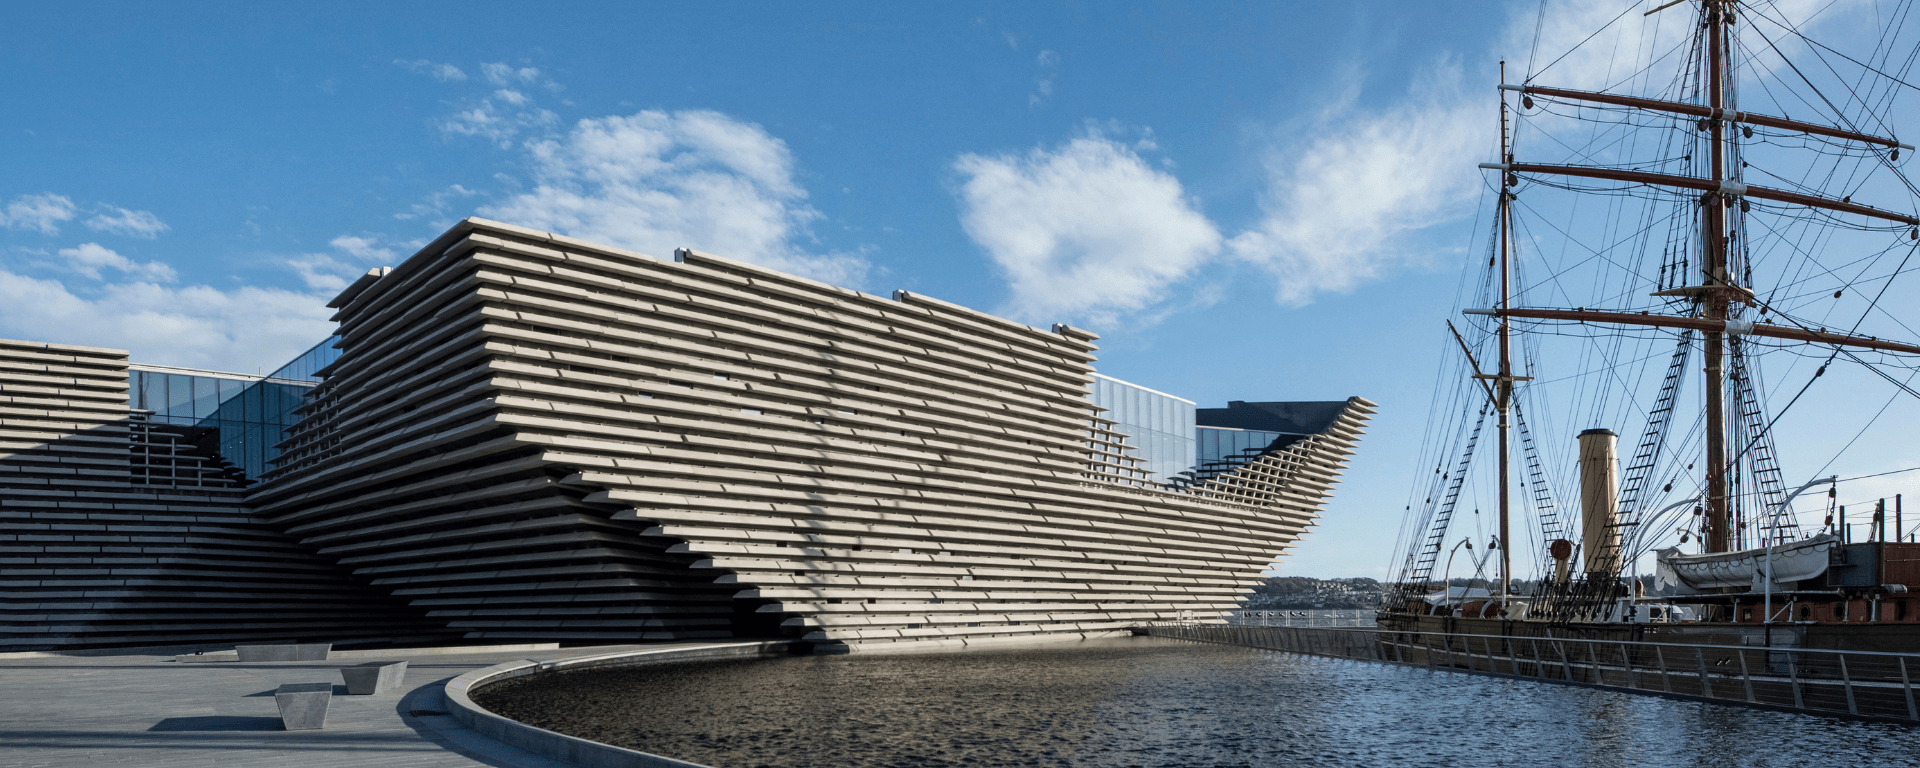 V&A museum Dundee with the Discovery to the right of the image